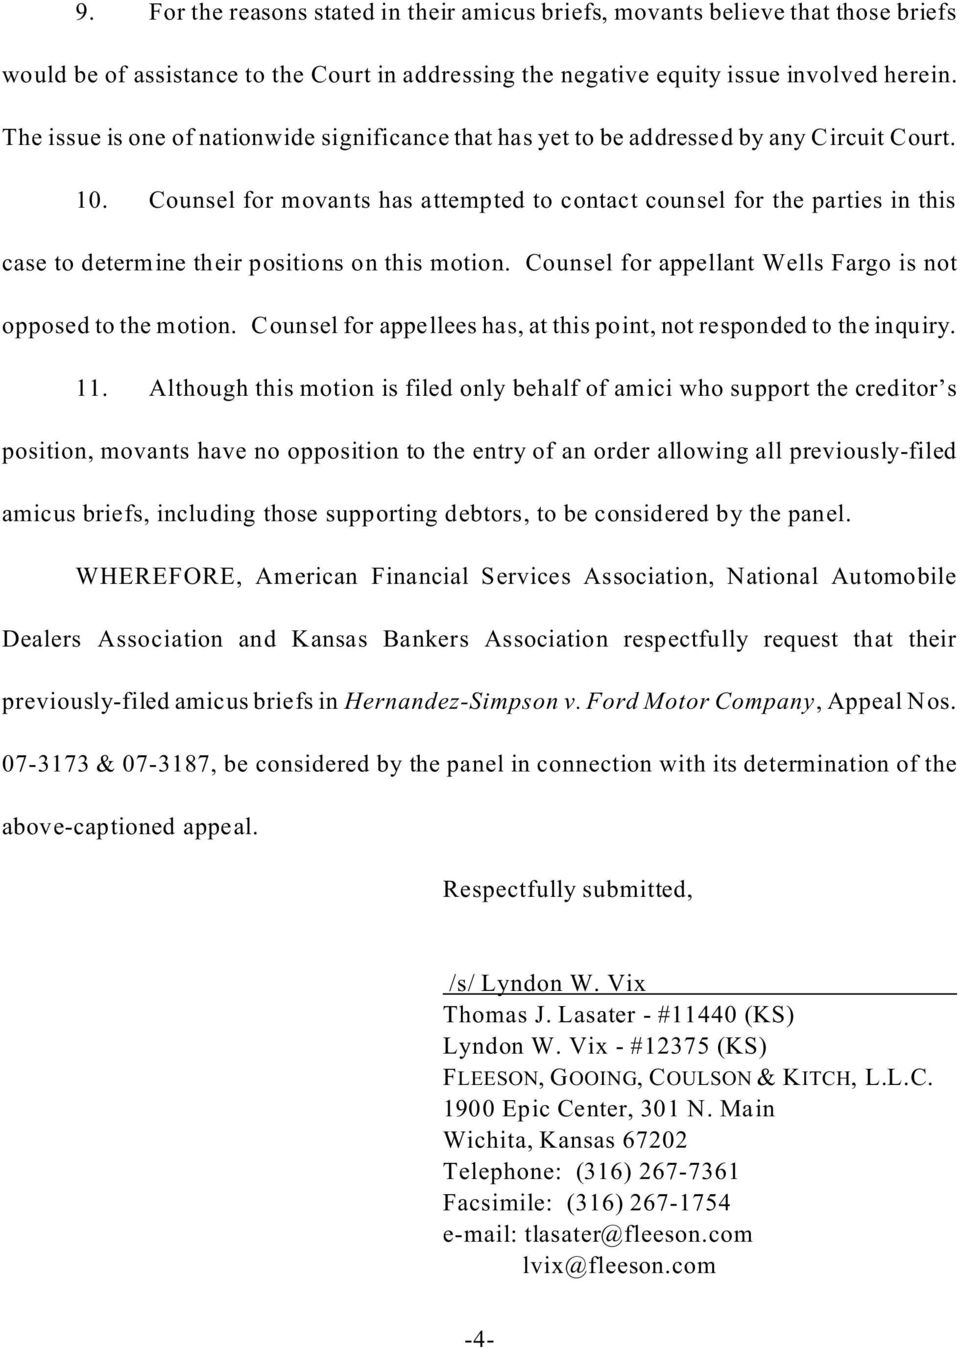 Counsel for movants has attempted to contact counsel for the parties in this case to determine their positions on this motion. Counsel for appellant Wells Fargo is not opposed to the motion.